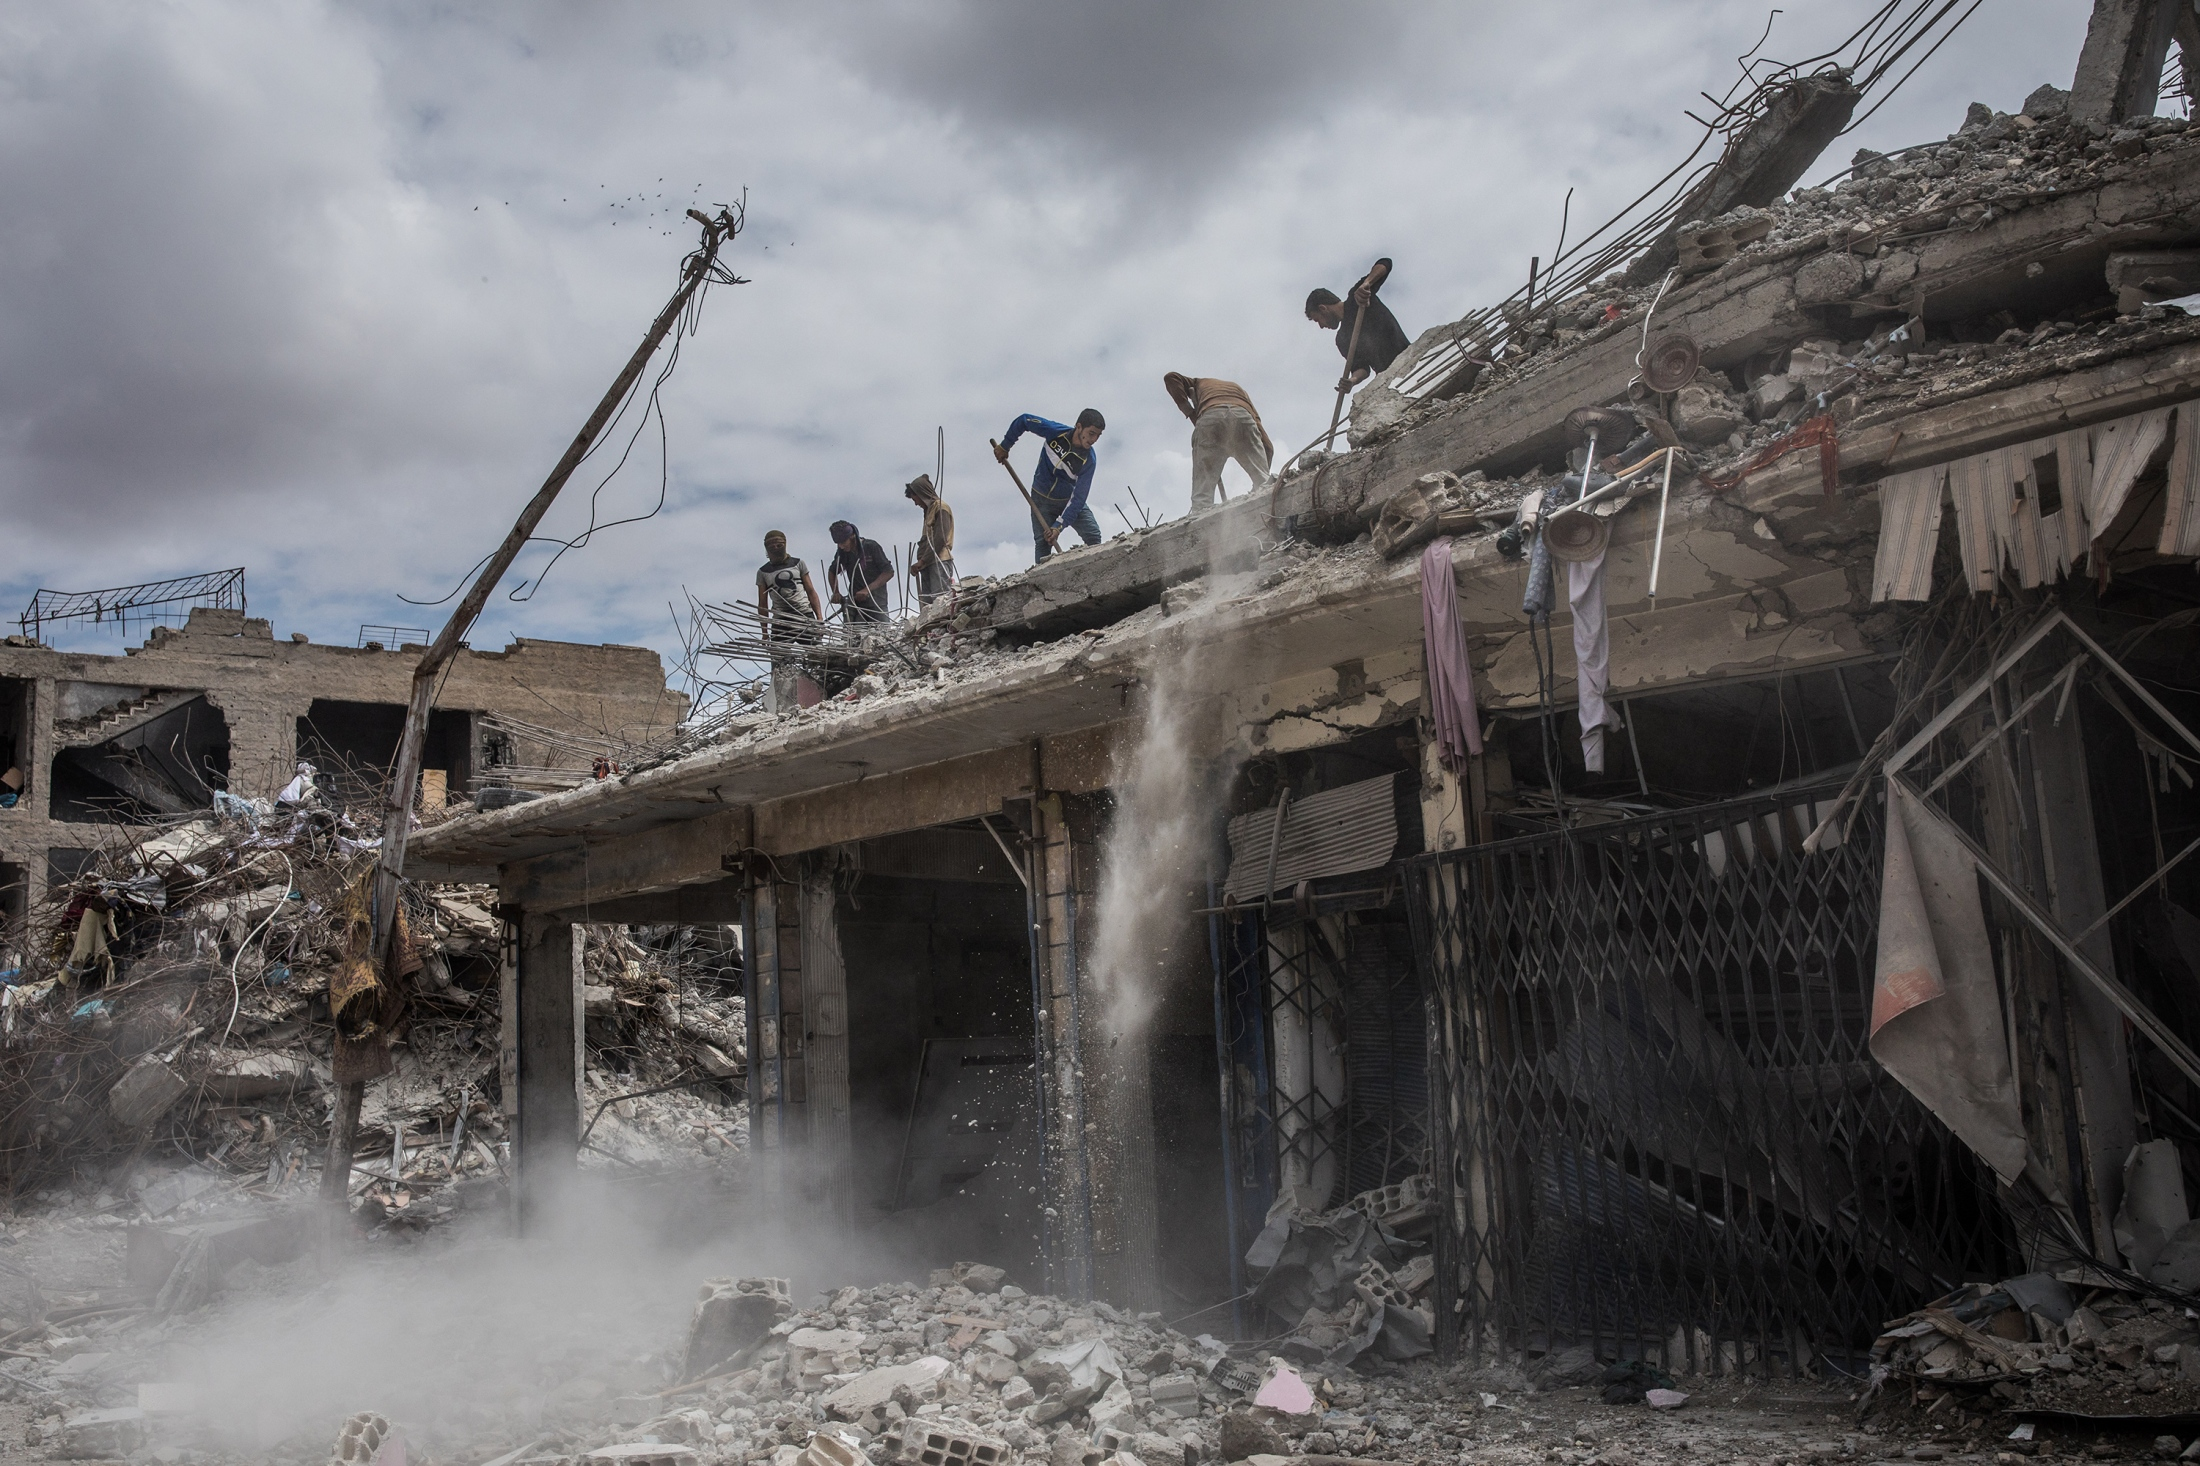 Construction workers remove rubble from a destroyed building in Raqqa, Syria, on Wednesday, May 9, 2018. An estimated 80 percent of Raqqa's infrastructure was destroyed or damaged during the offensive to retake the city from ISIS, with thousands of lives lost in aitstrikes by the coalition, addition to those civilians who were executed by ISIS during their reign over the city from 2014 until their ouster in 2017.